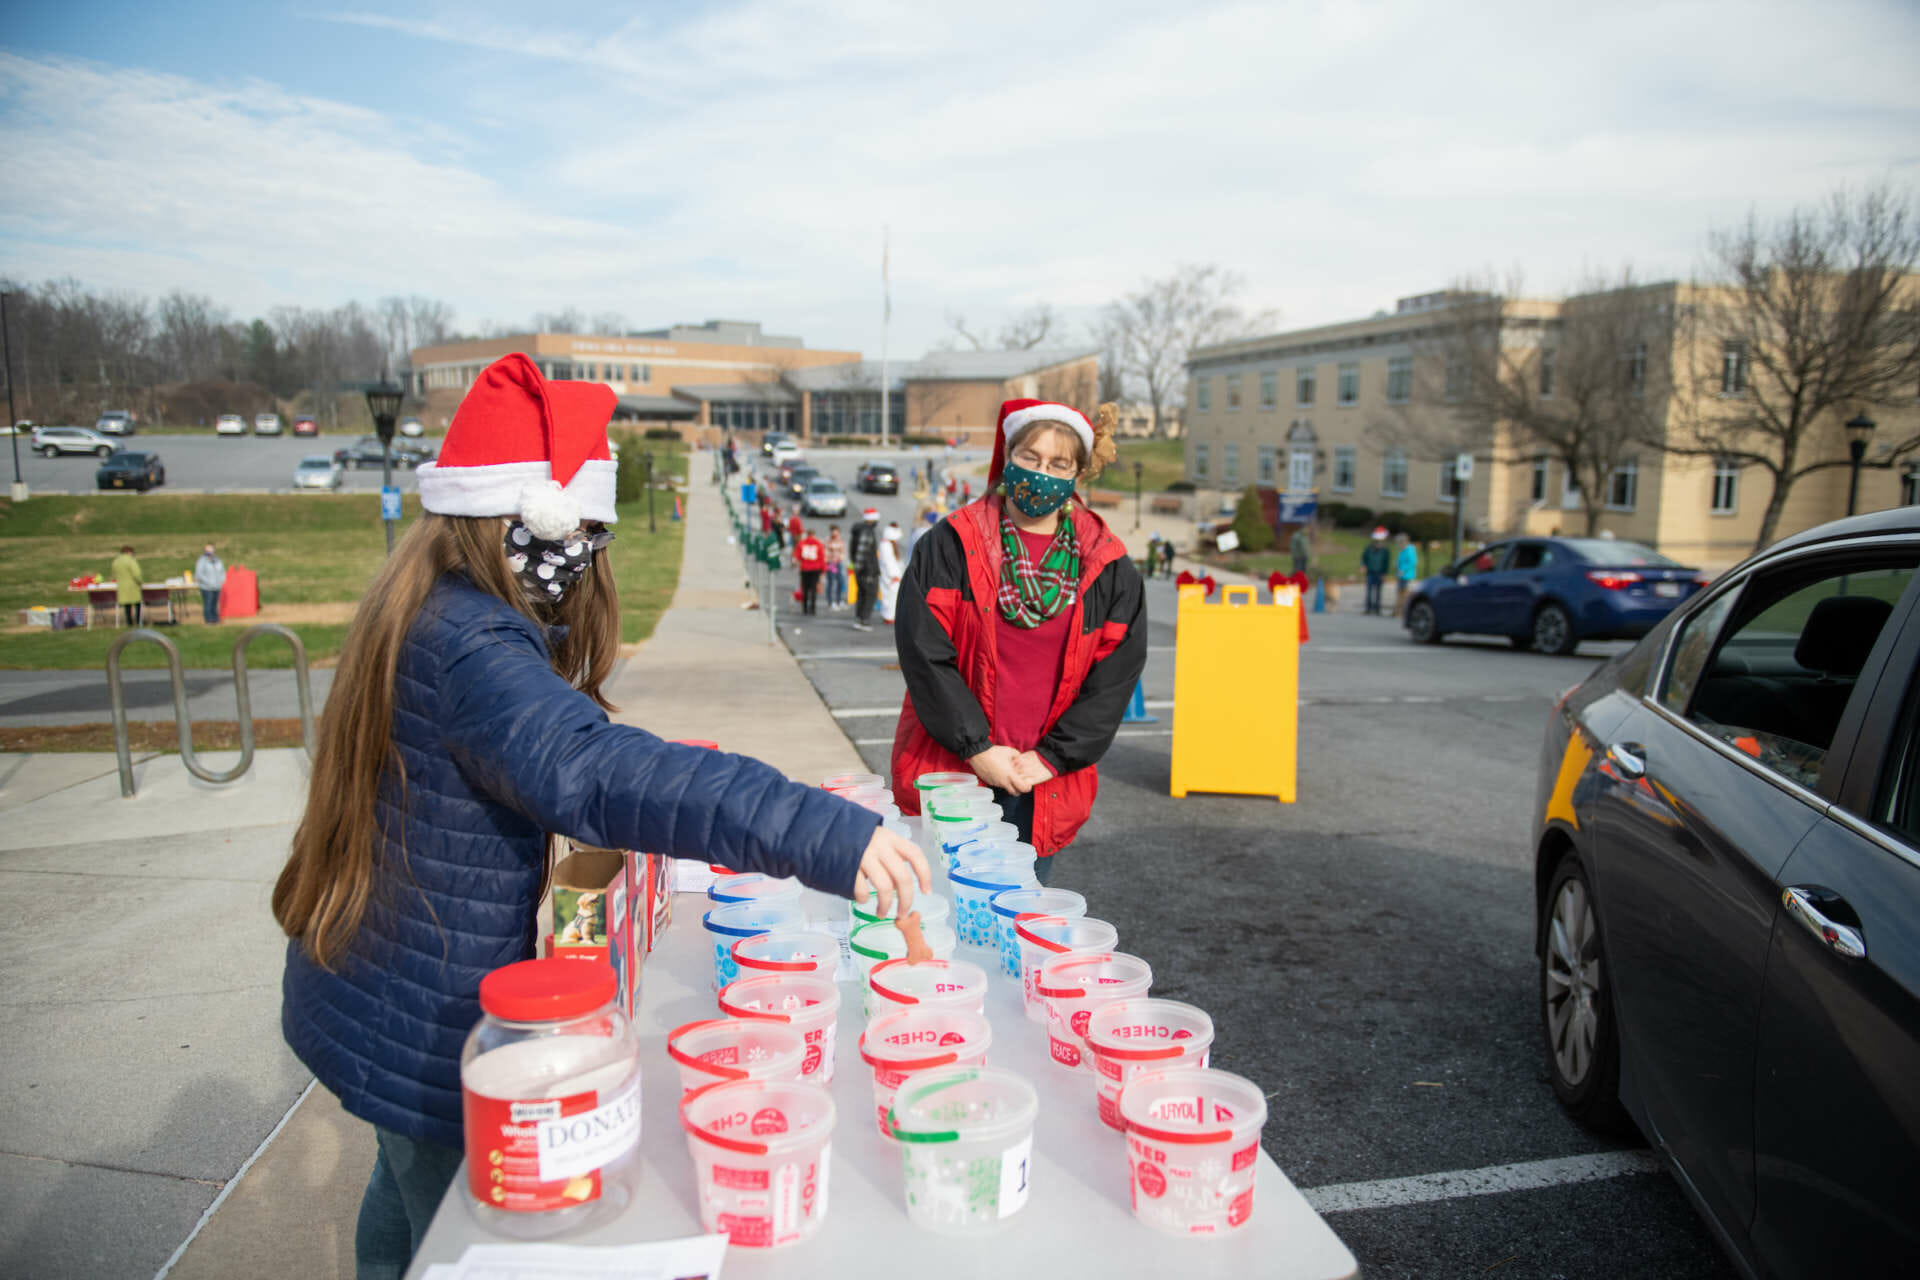 """After driving past all the contestants in the """"Best in Howliday Show,"""" attendees vote on their favorite by having a dog treat dropped in a cup labeled with the contestant's number. Photo by Seth Freeman."""